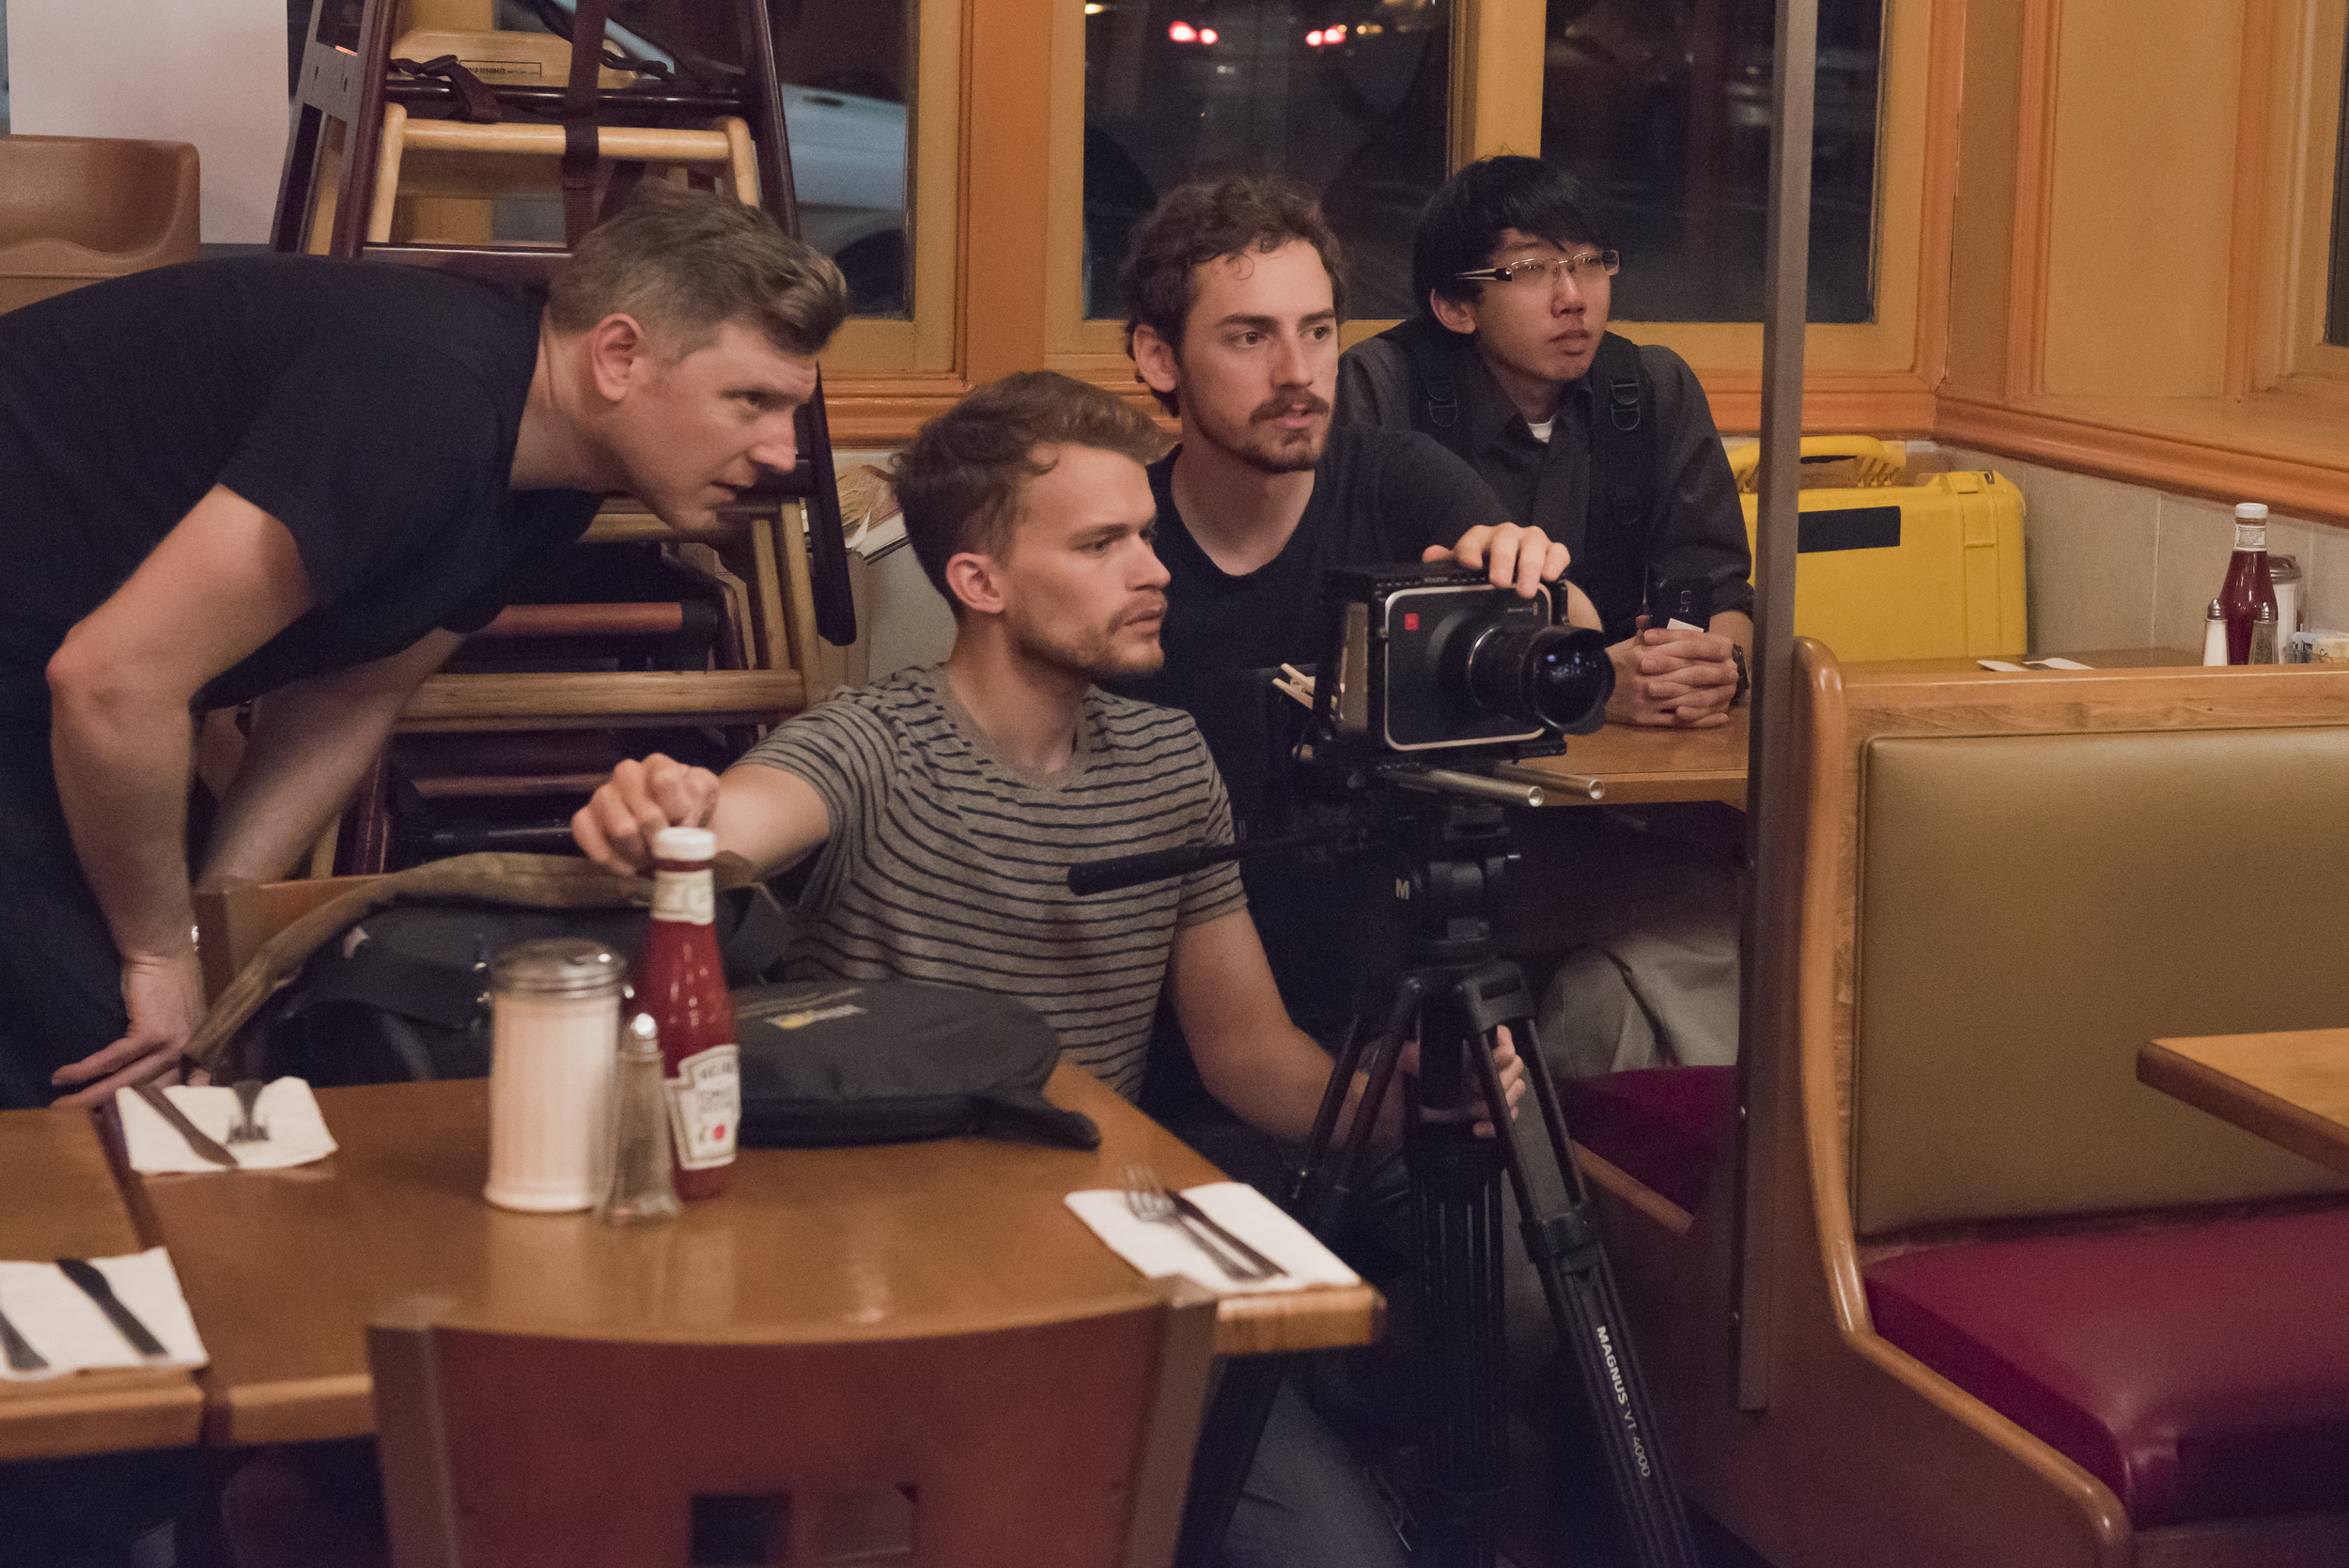 Ian Scott McGregor (writer), Will Mayo (director), Andrew Daugherty (DP), Jonathan Lau (sound mixer)